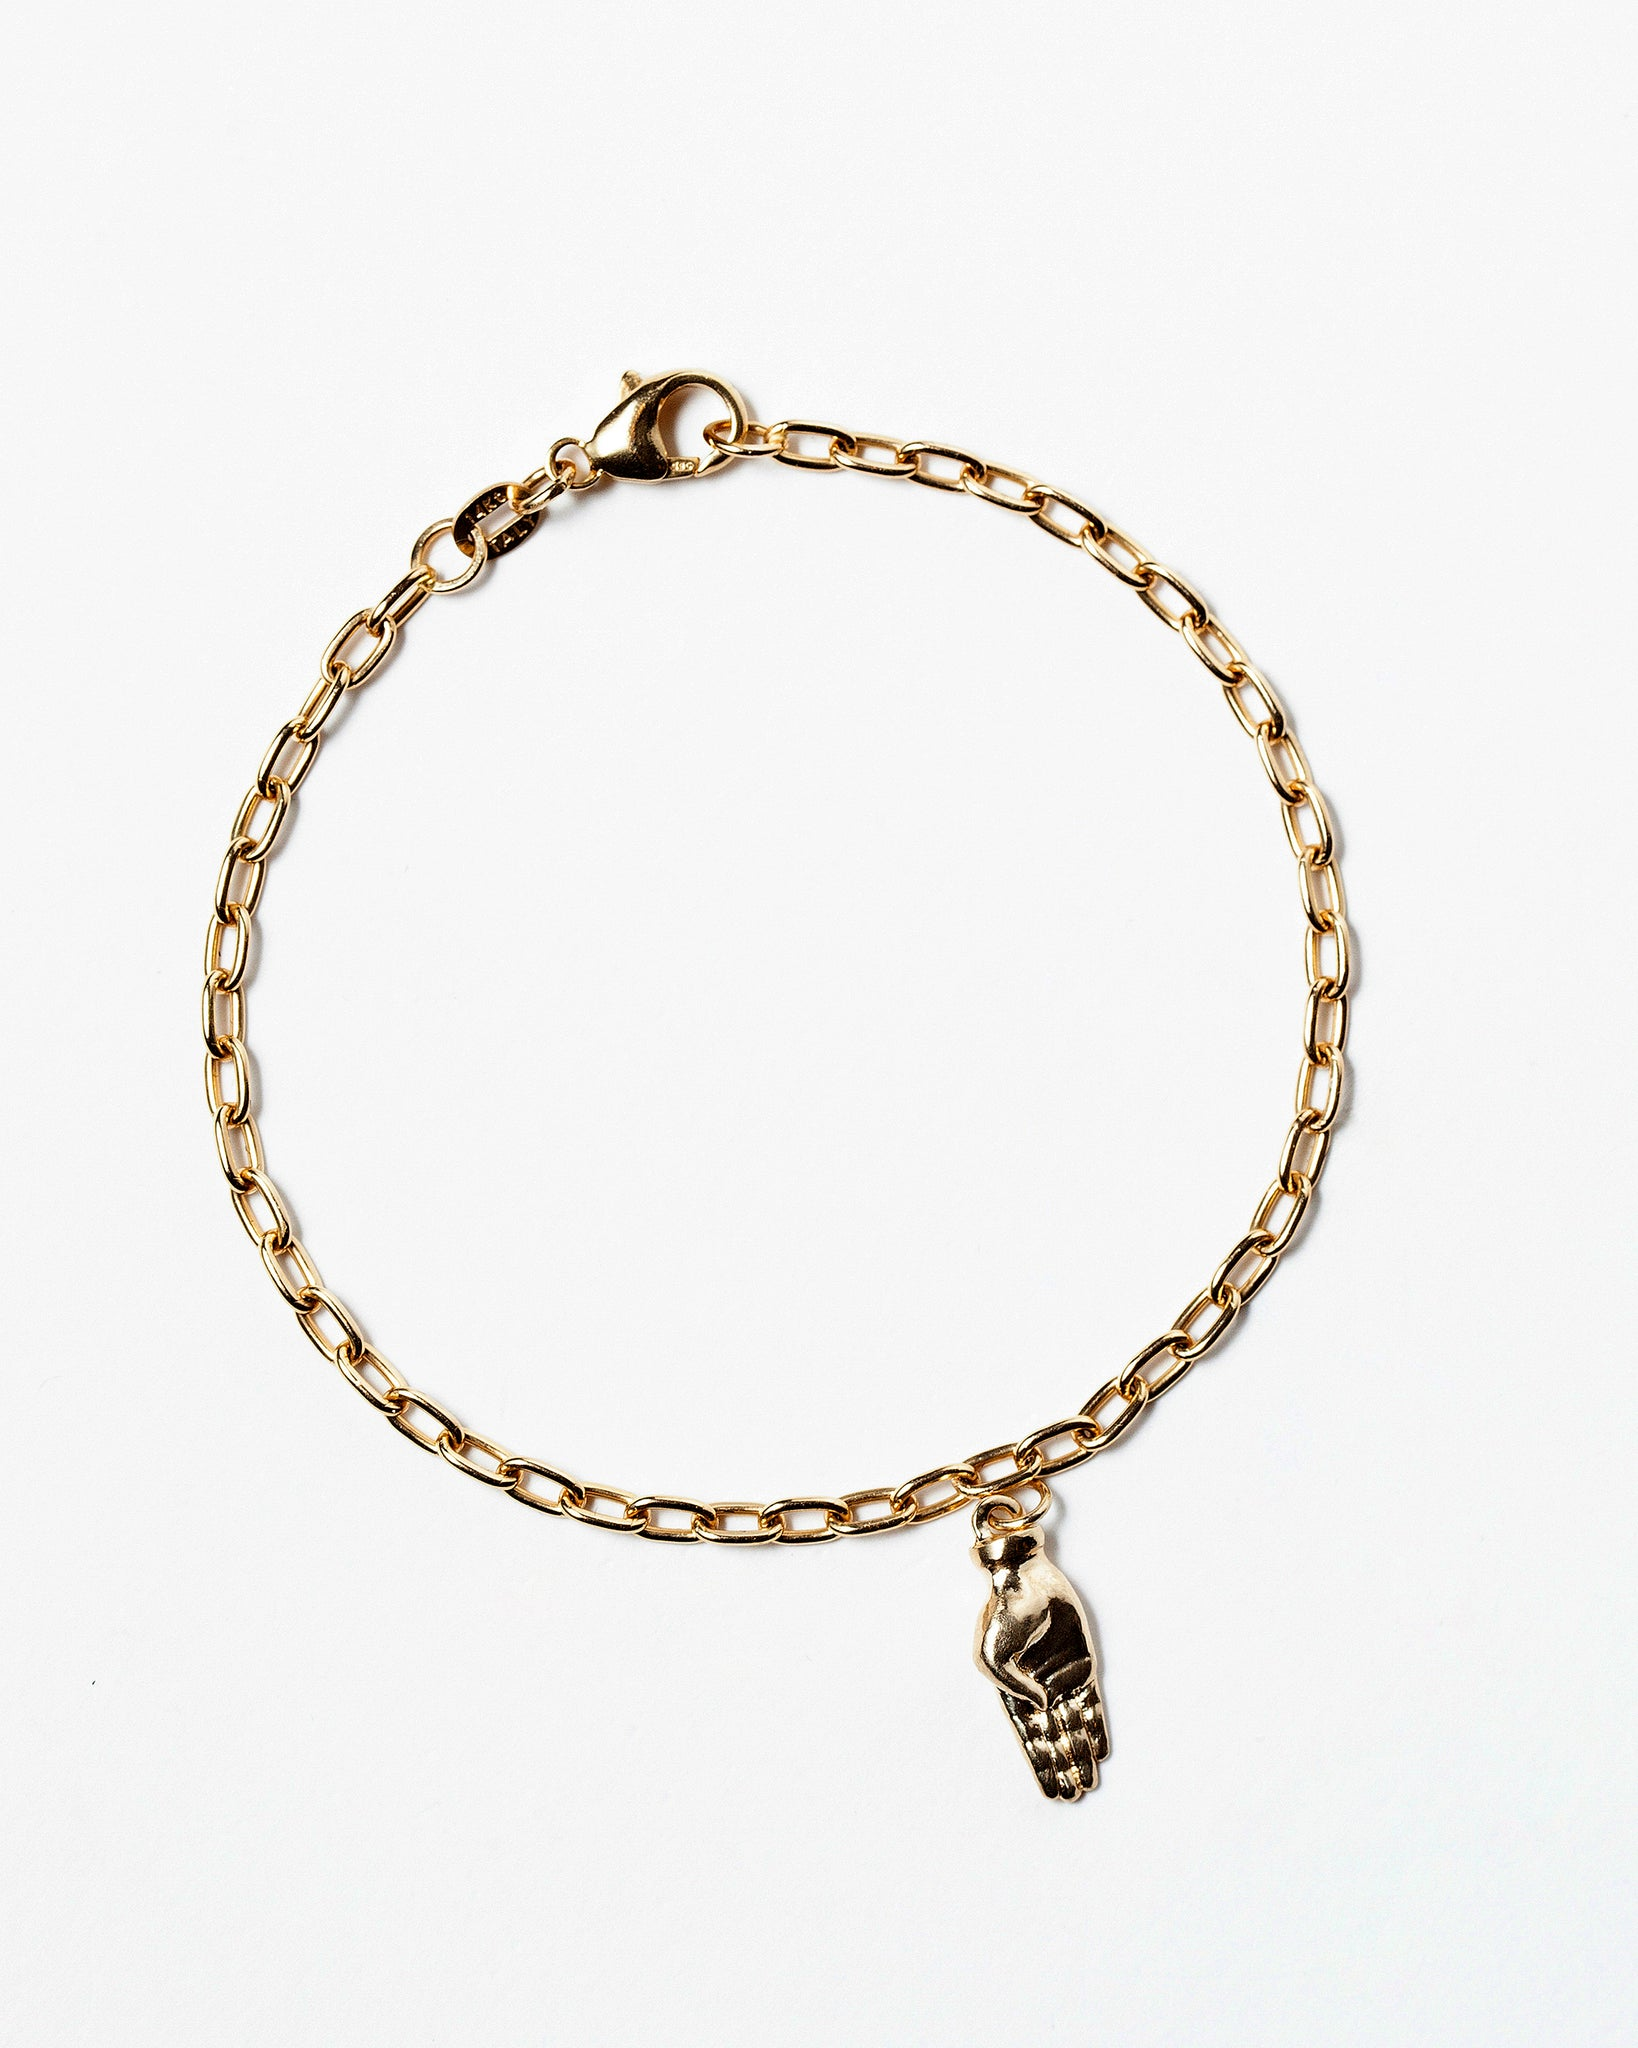 Sign Language Letter B Charm on Chain Bracelet